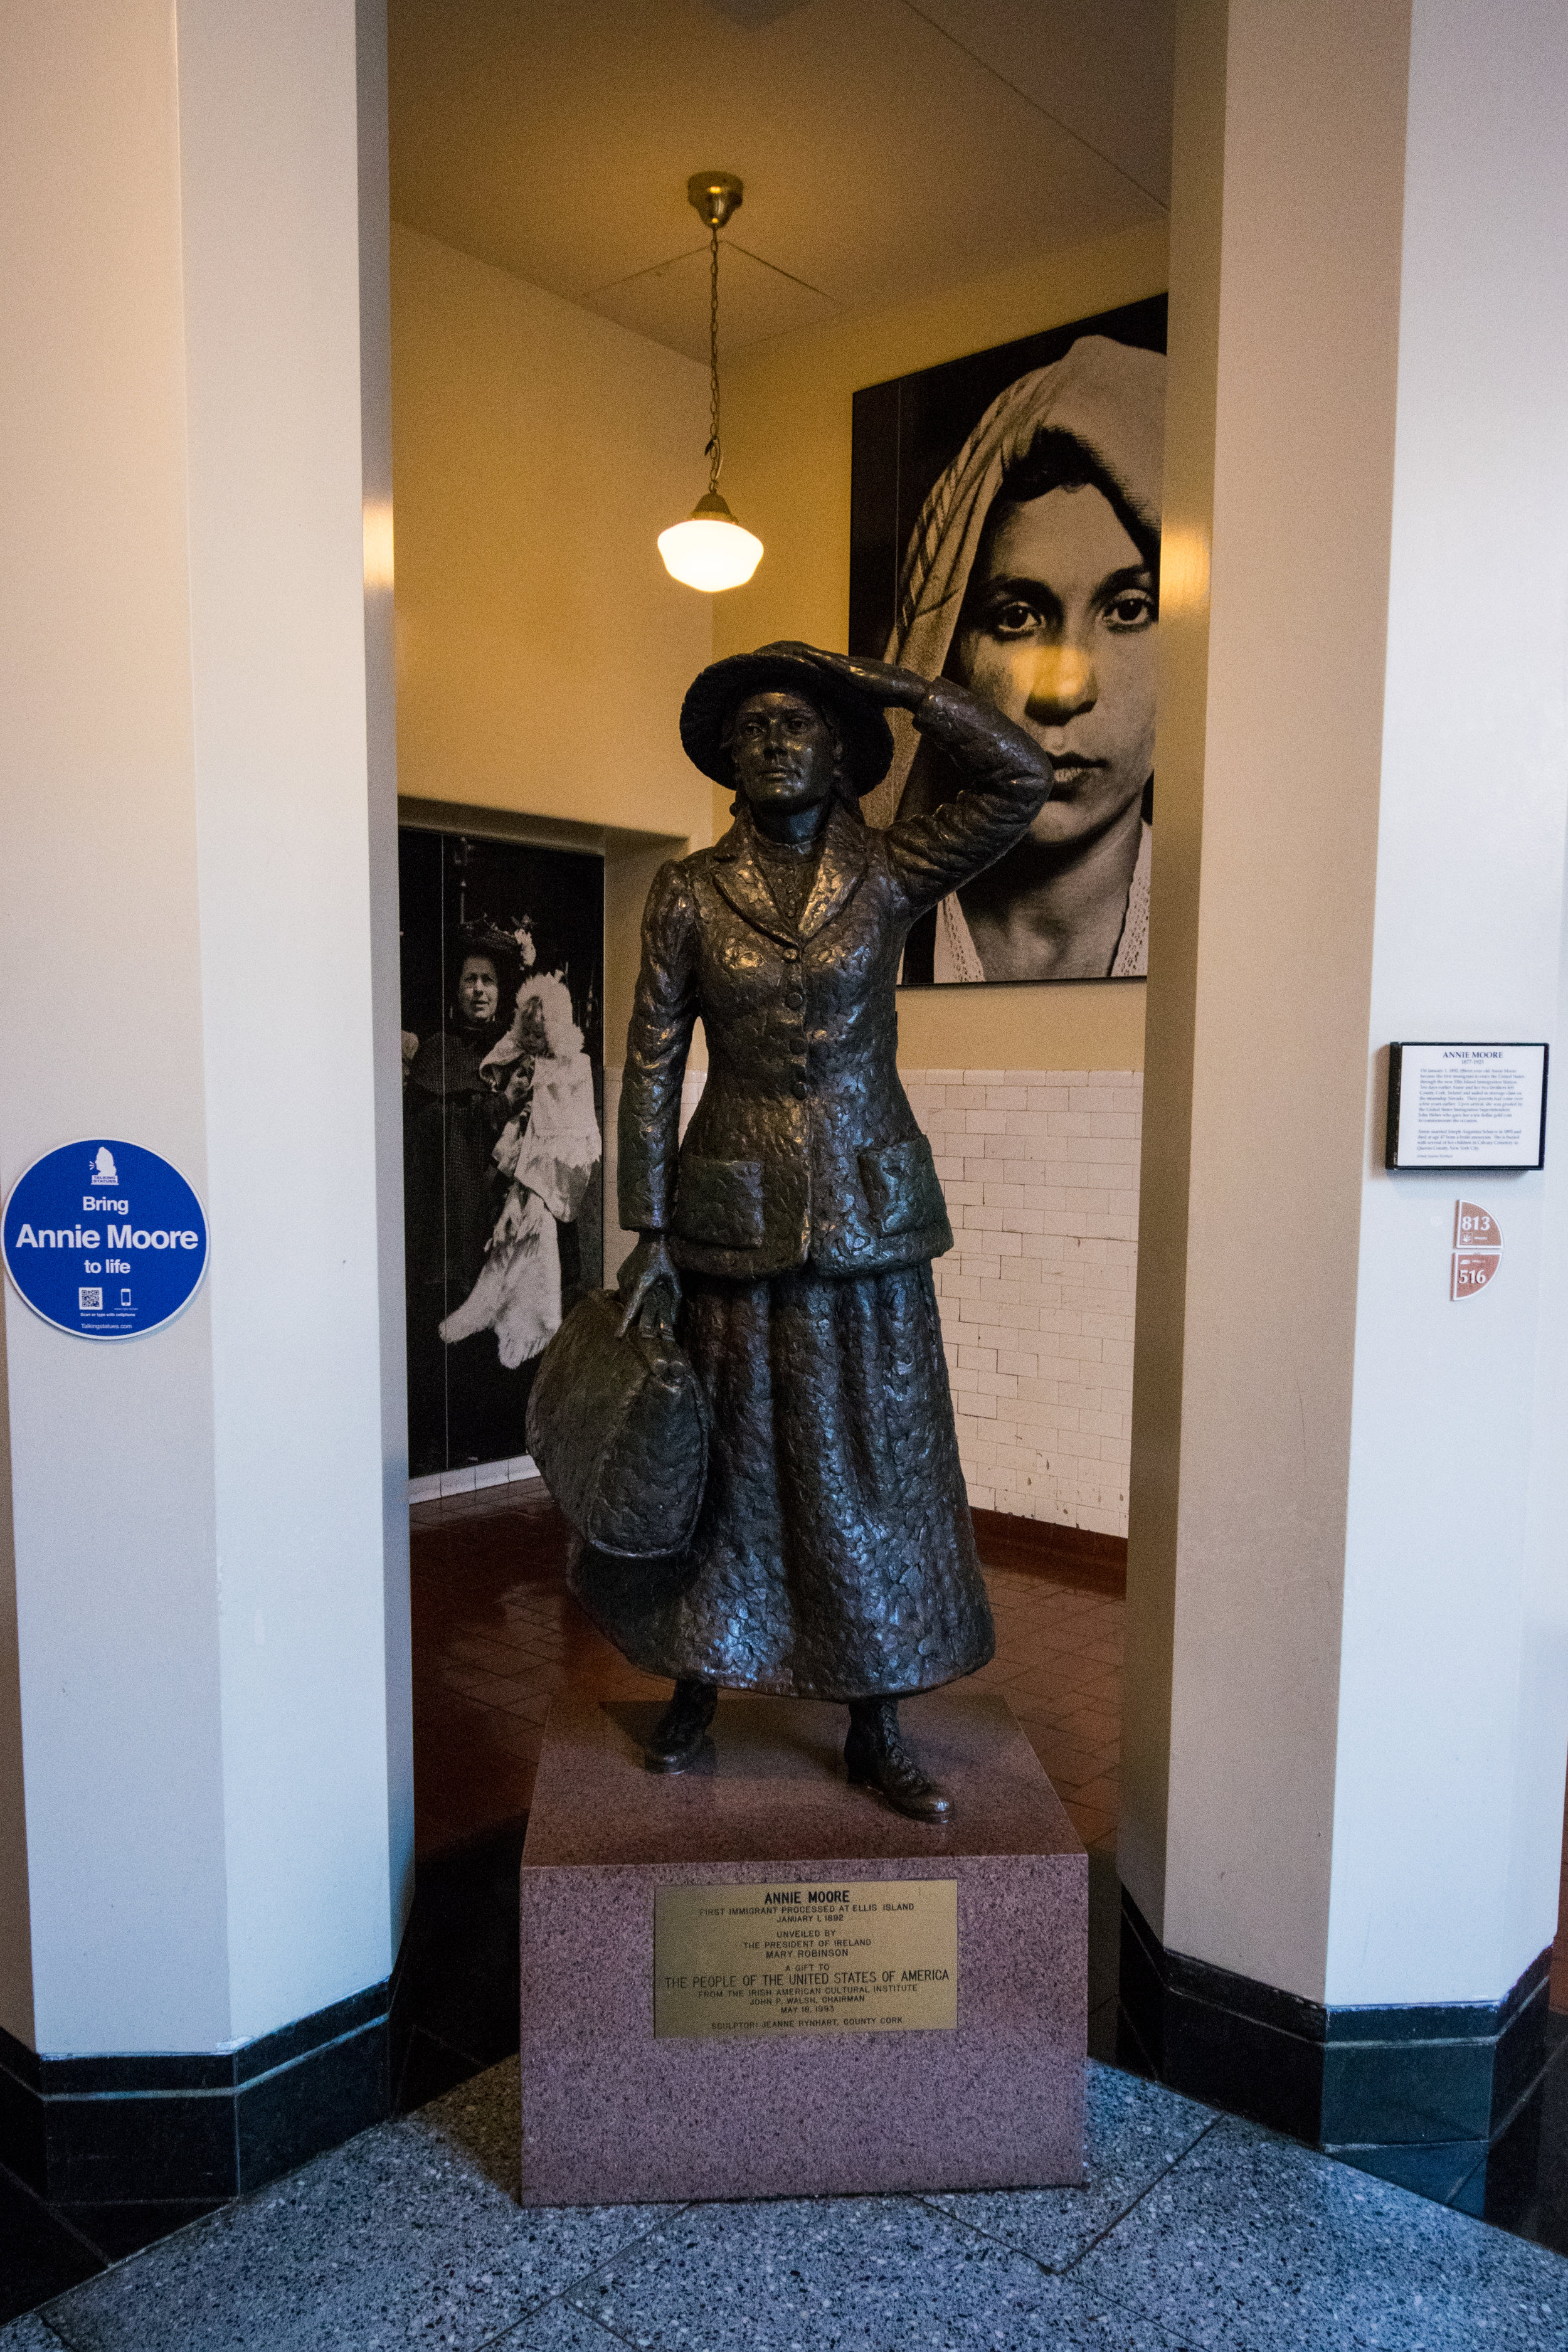 Ellis Island's first immigrant, Annie Moore